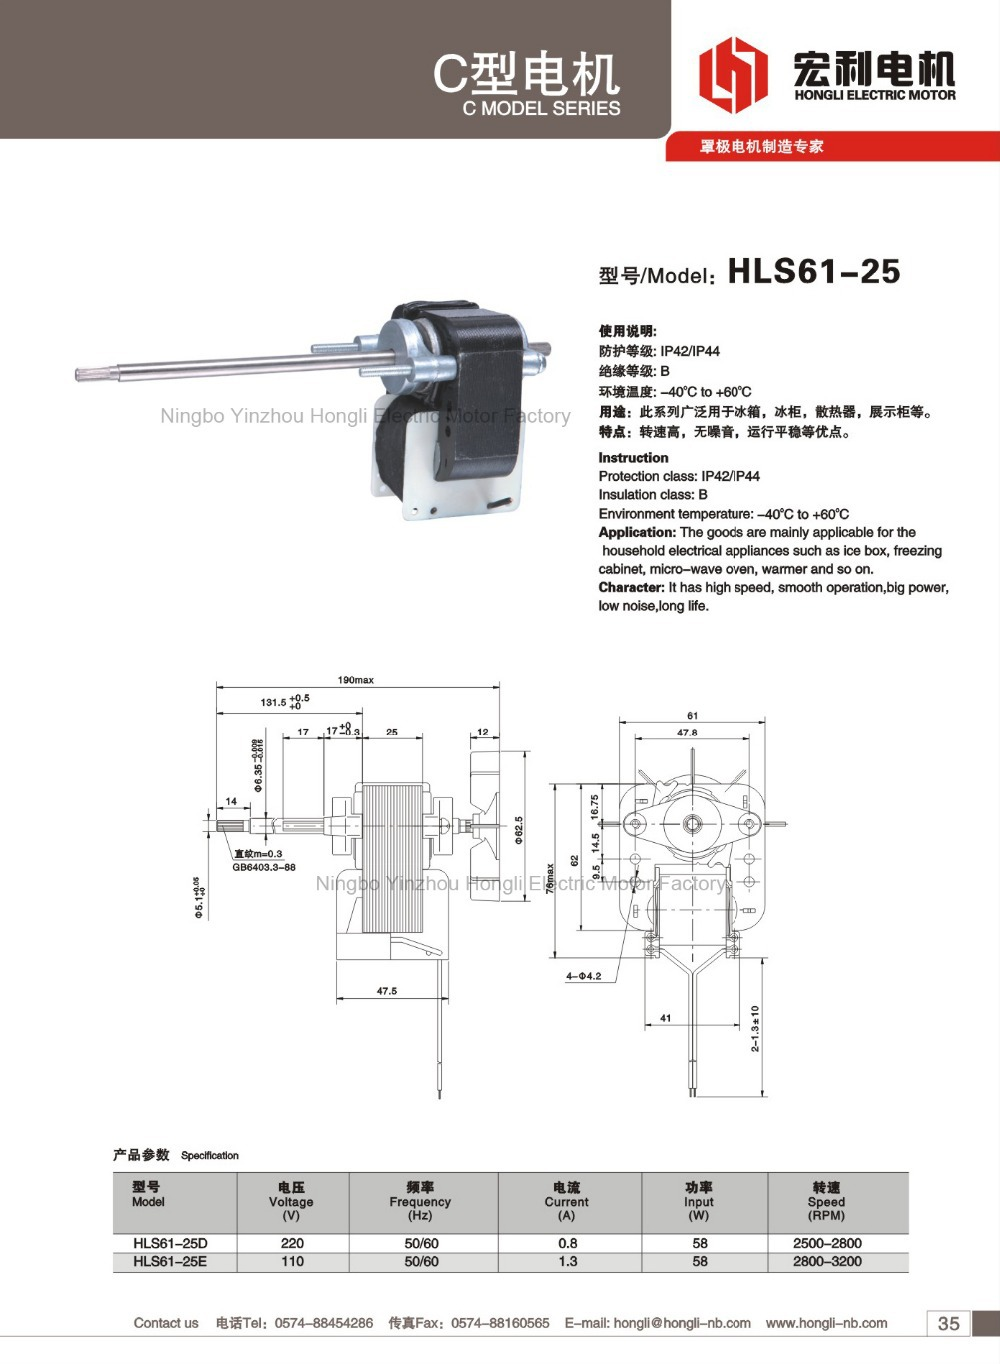 Long shaft pump motor shaded pole motor single phrase buy shade with plastic fan blade long shaft pump motor shaded pole motor single phrase pooptronica Image collections